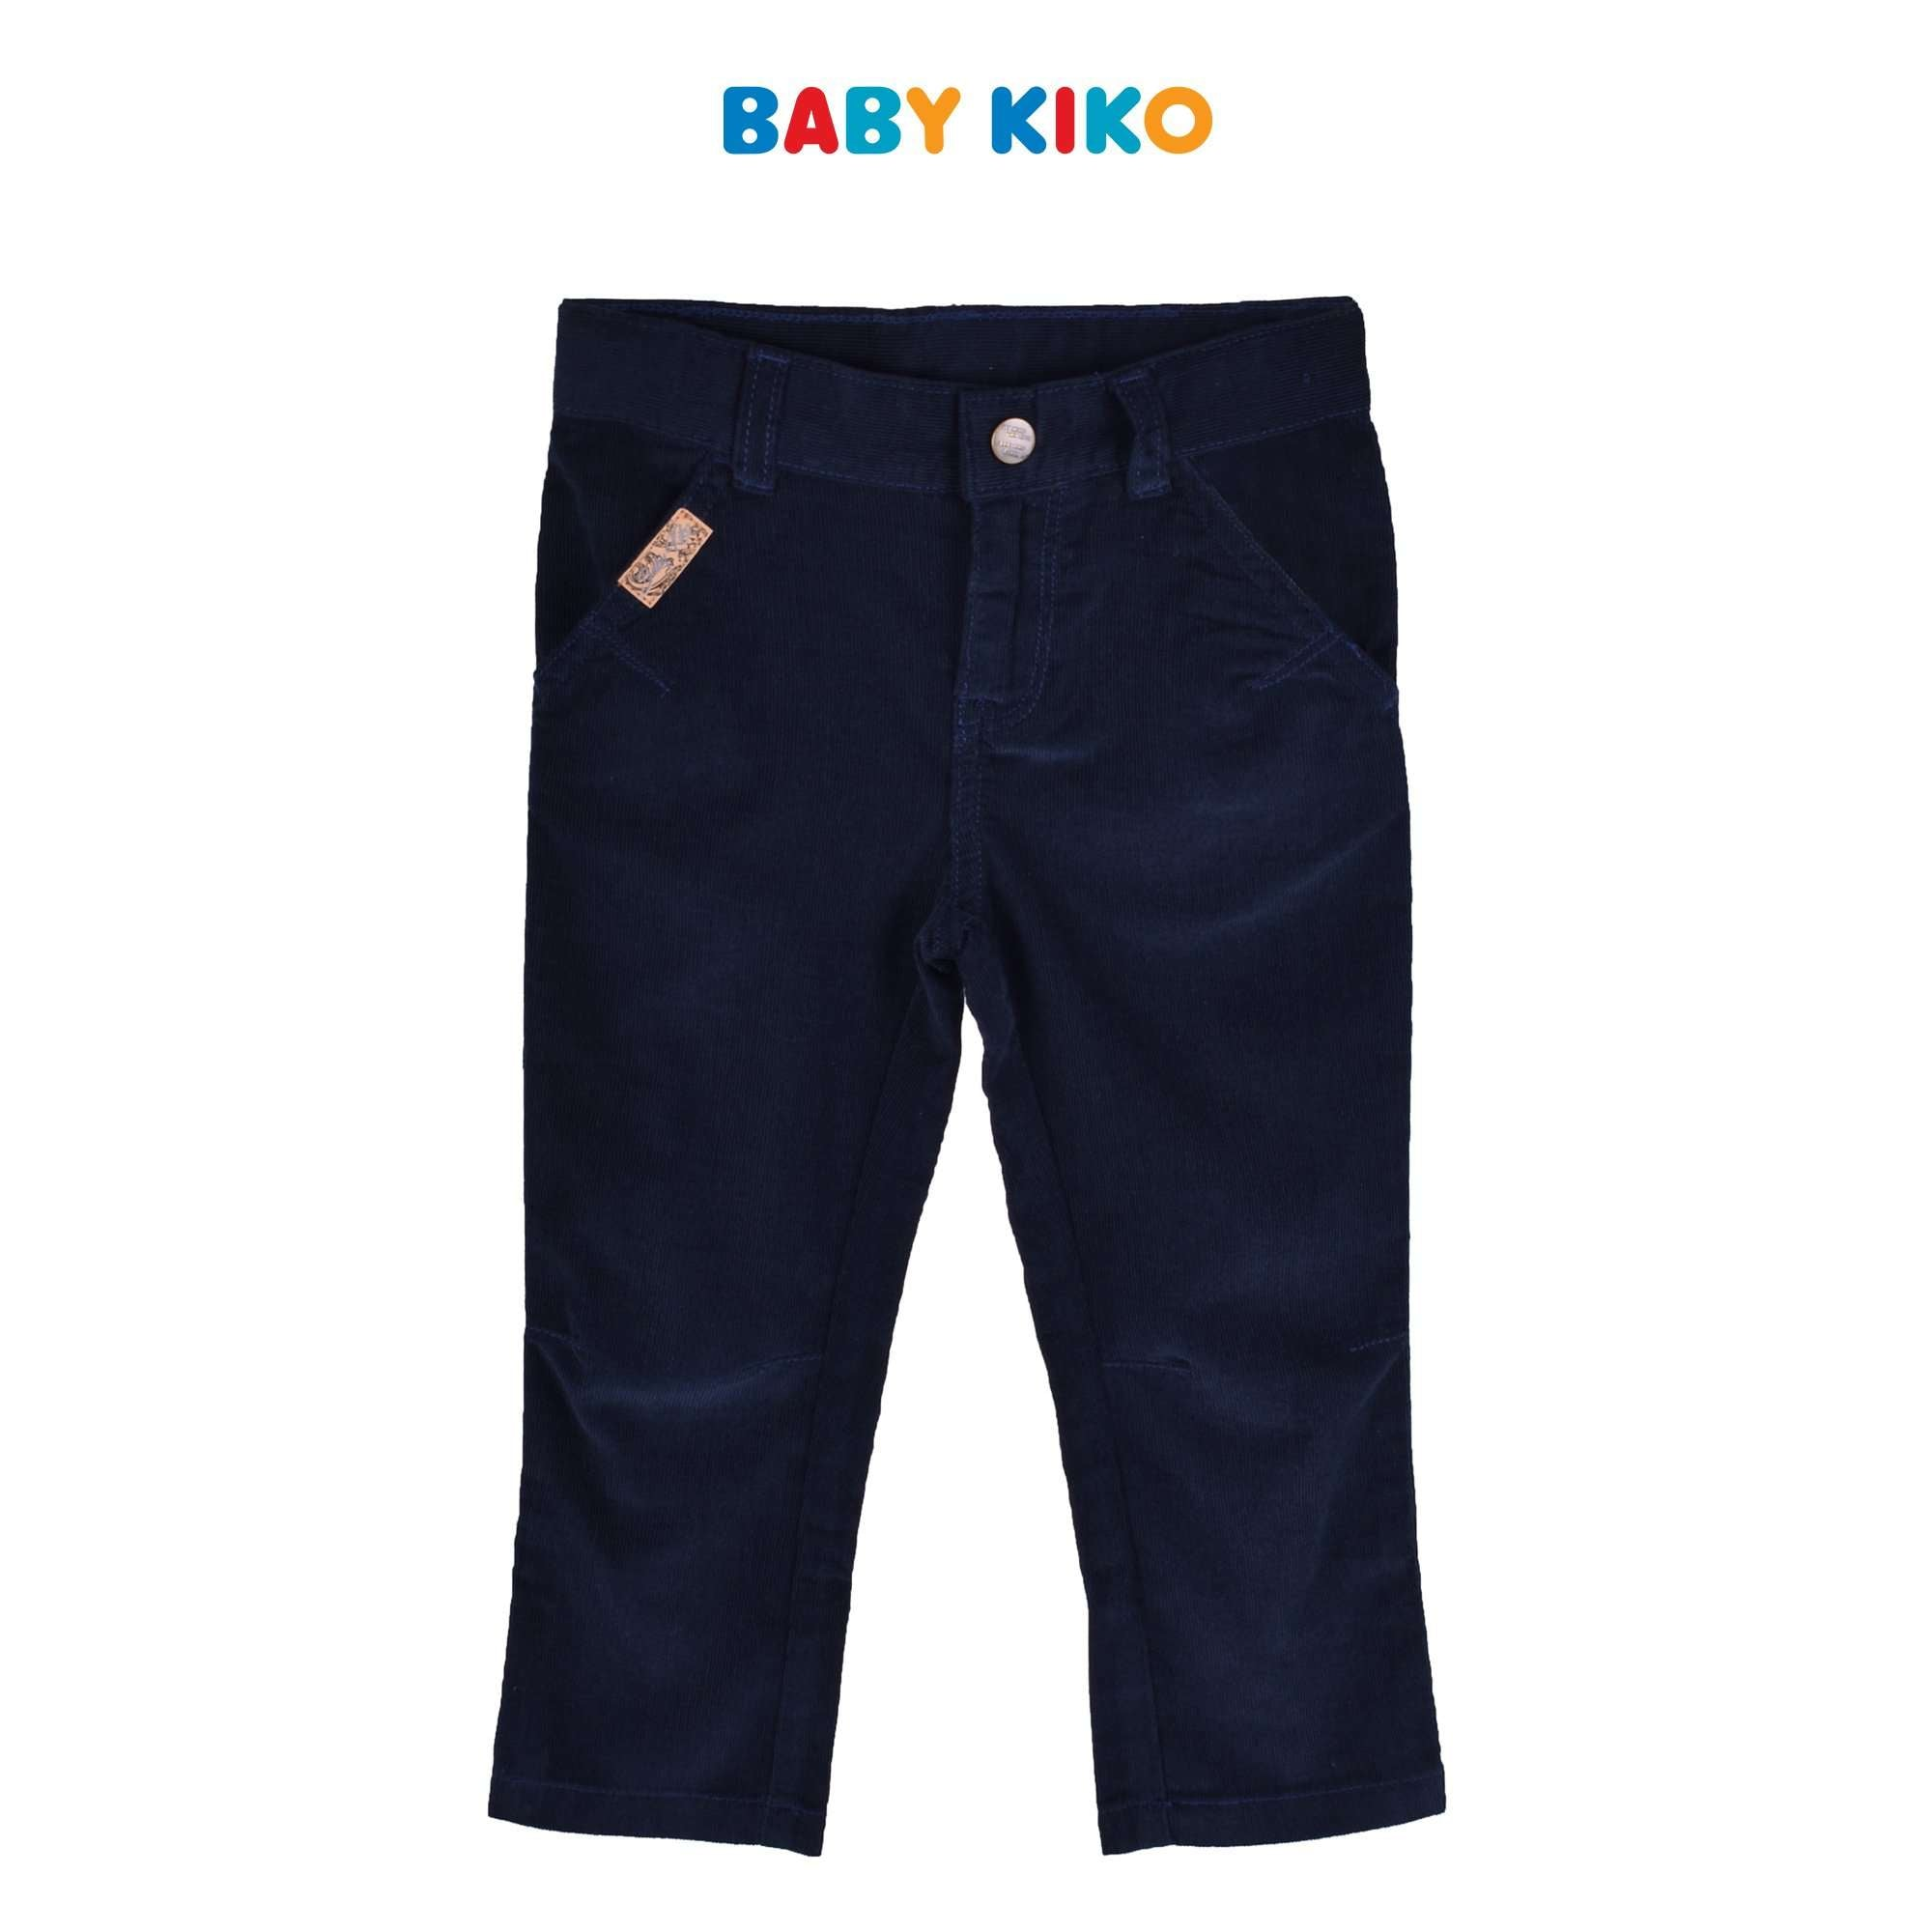 Baby KIKO Toddler Boy Long Pants 335115-251 : Buy Baby KIKO online at CMG.MY